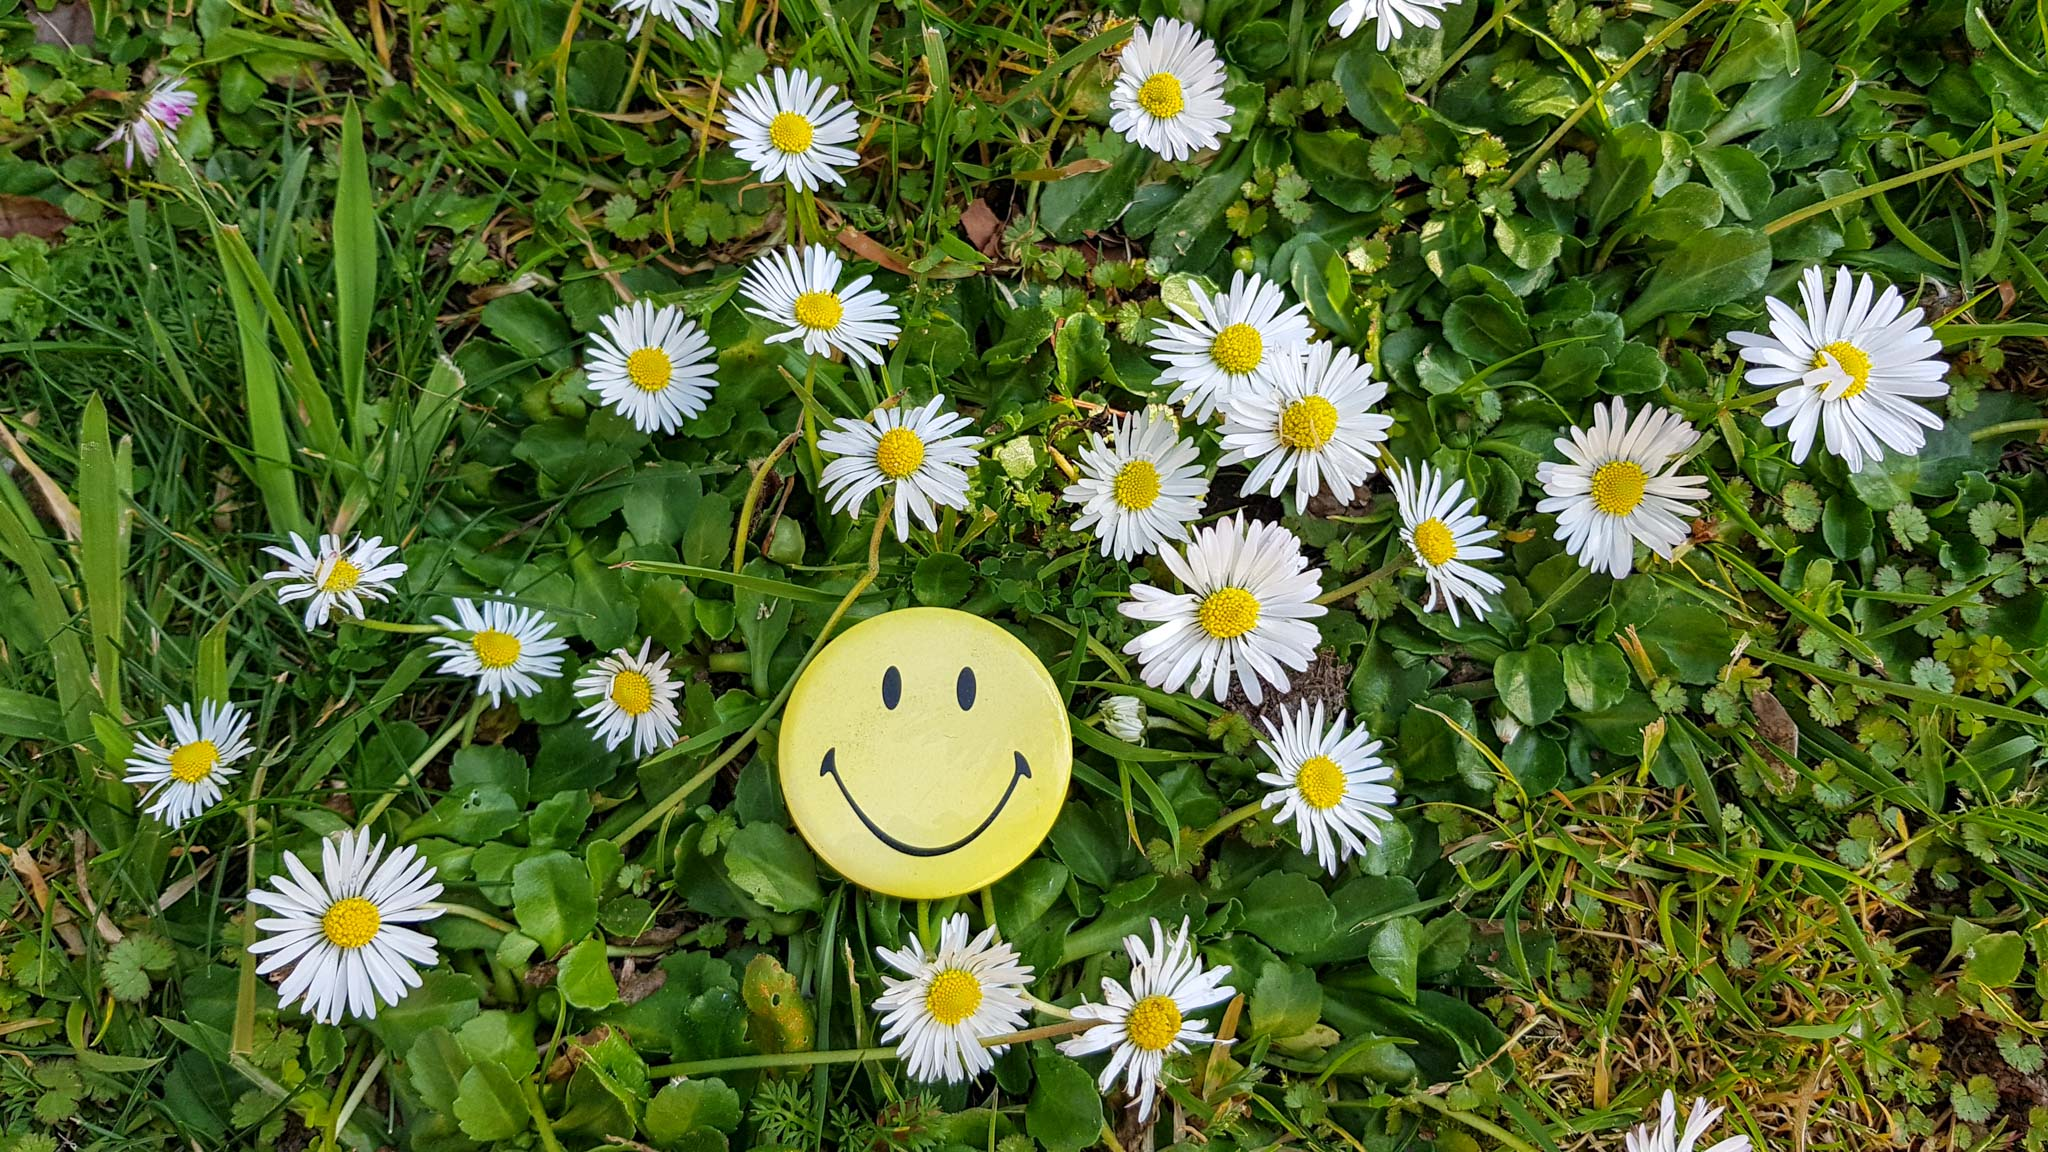 smiley face & daisies / Friday postscript 14.9.2018 / 109